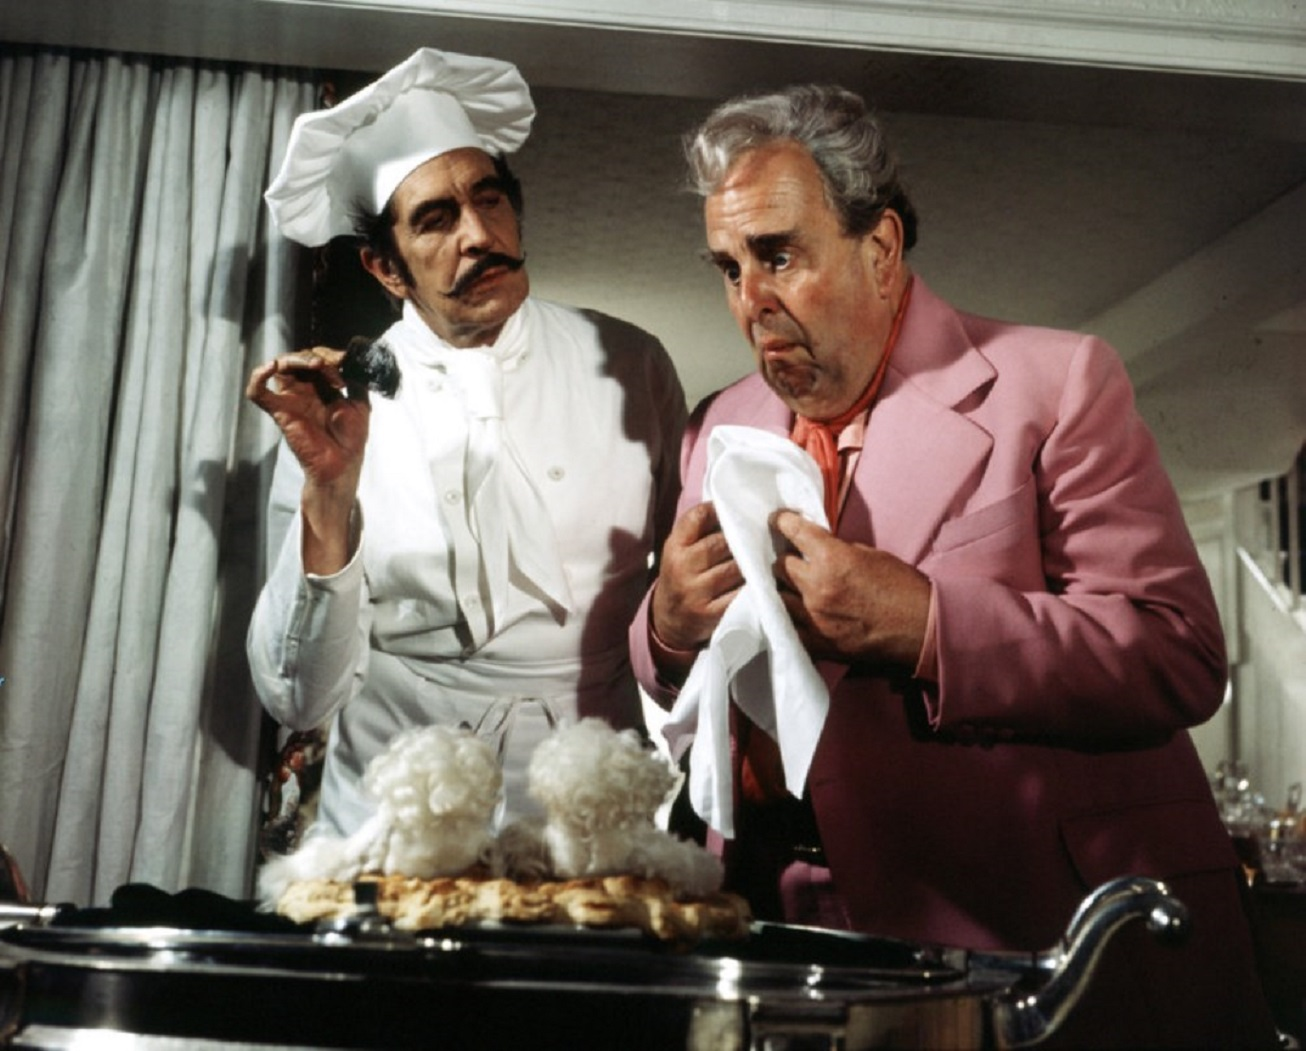 Mad Shakespearean actor Richard Lionheart (Vincent Price) serves Robert Morley his two beloved poodles baked in a pie in Theater of Blood (1973)